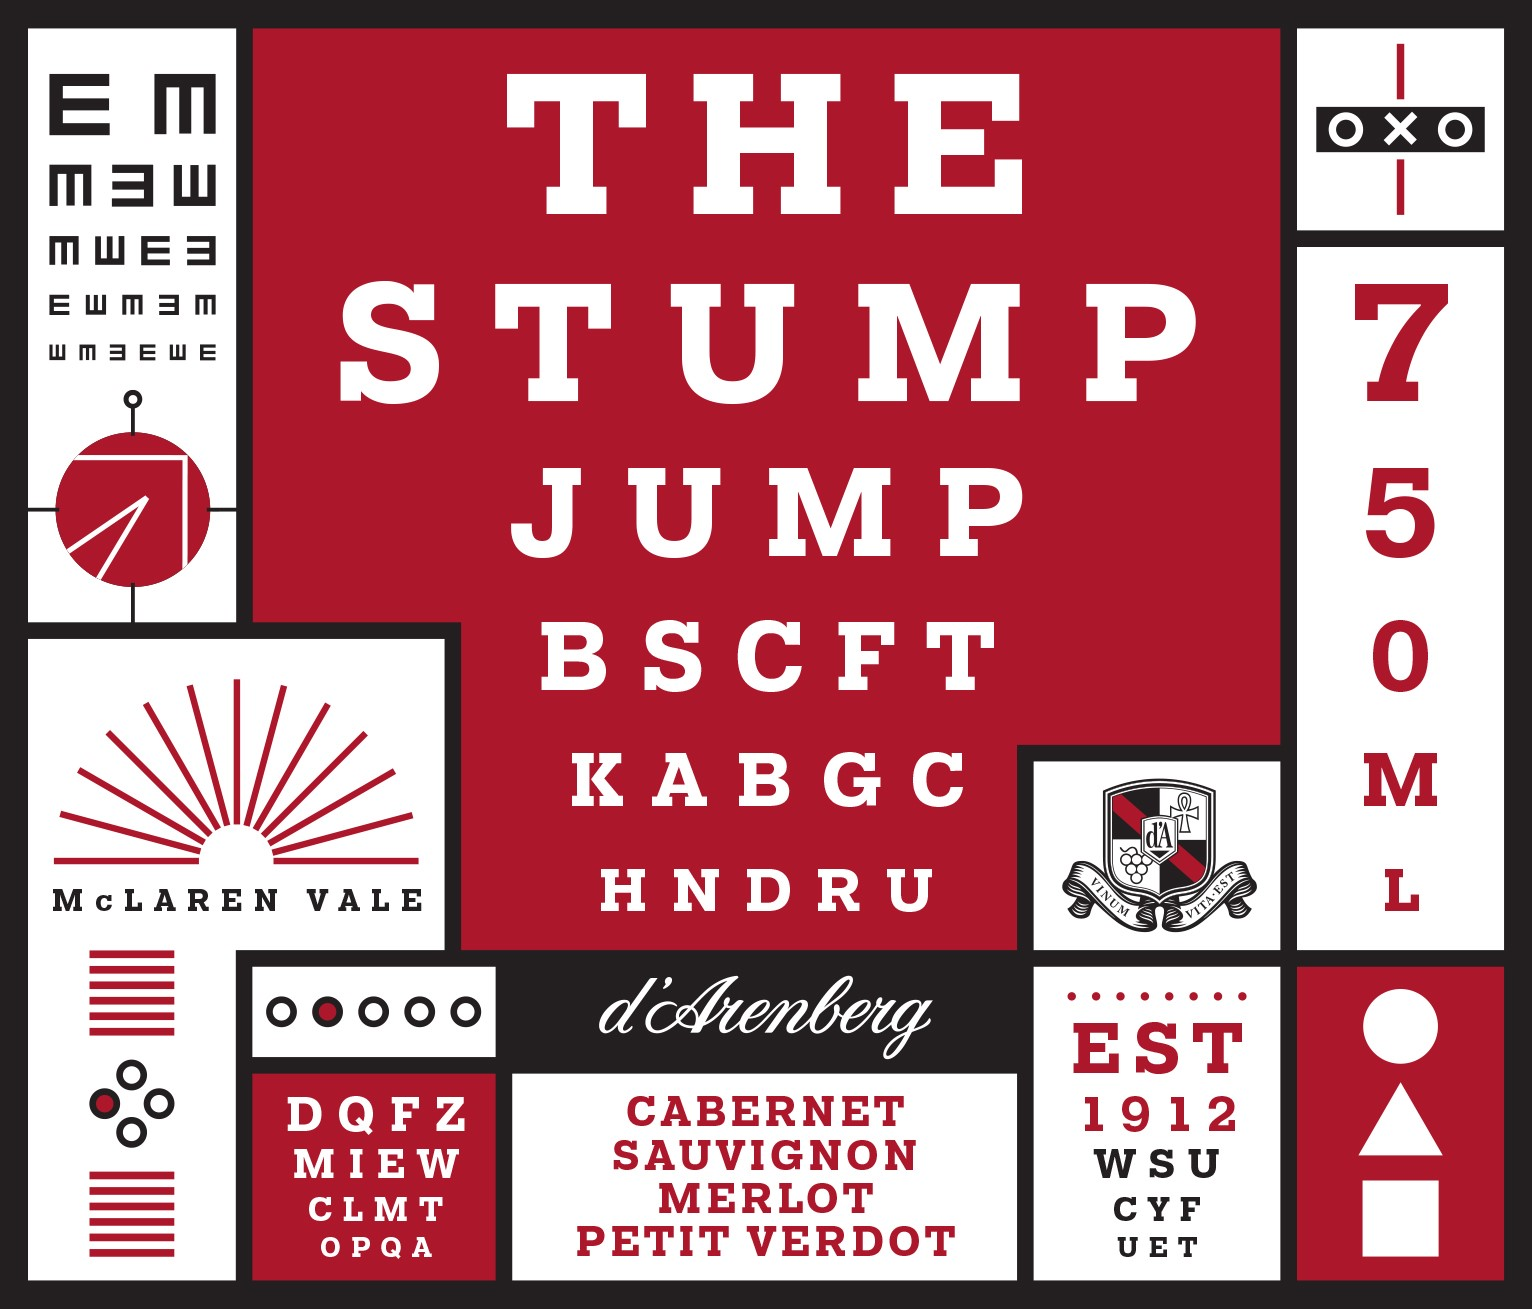 d'Arenberg The Stump Jump Cabernet Merlot 2013 MAIN